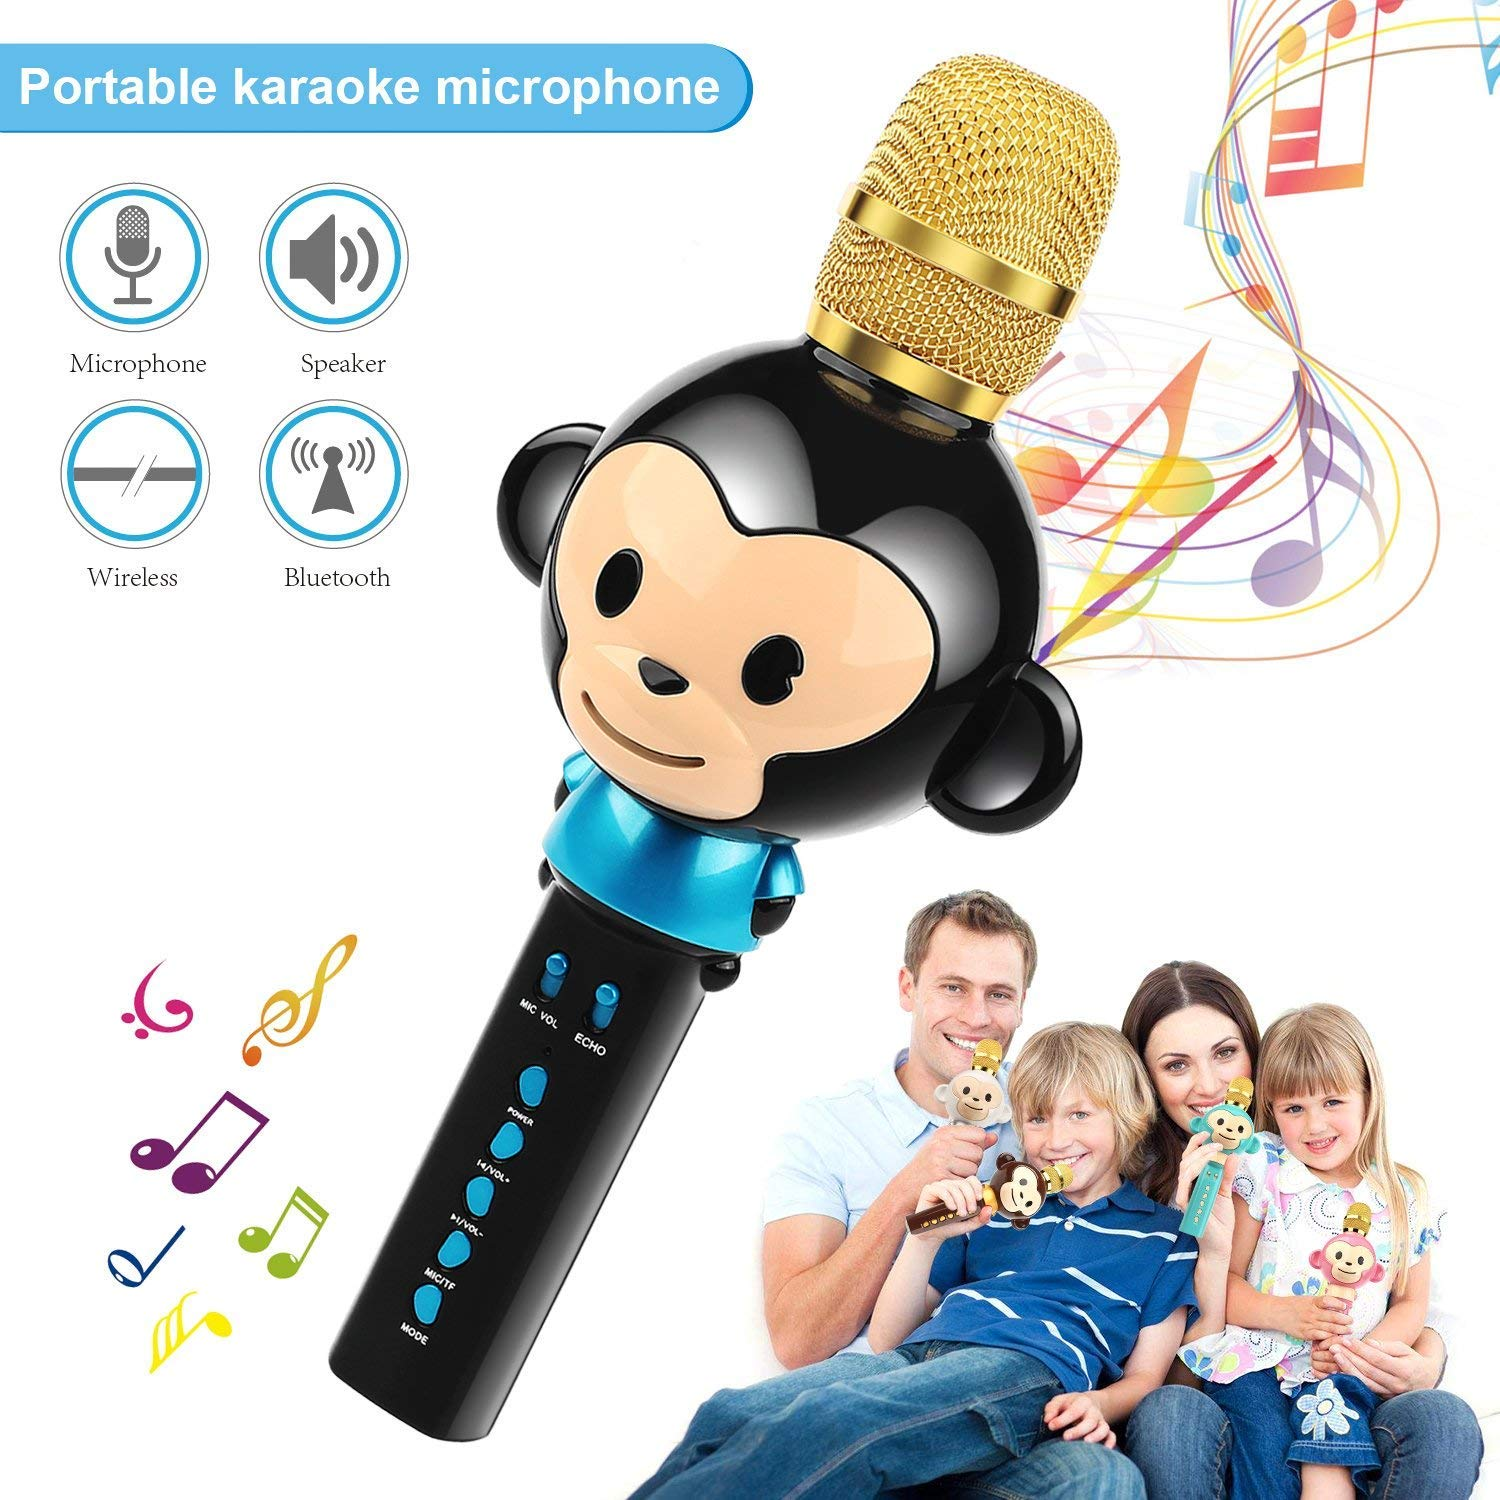 LingHui Kids Microphone Wireless Bluetooth Karaoke Microphone, 3-in-1 Portable Handheld Karaoke Mic Home Party Birthday Speaker Machine for iPhone/Android/iPad/Sony,PC and All Smartphone (Black) by LingHui (Image #1)